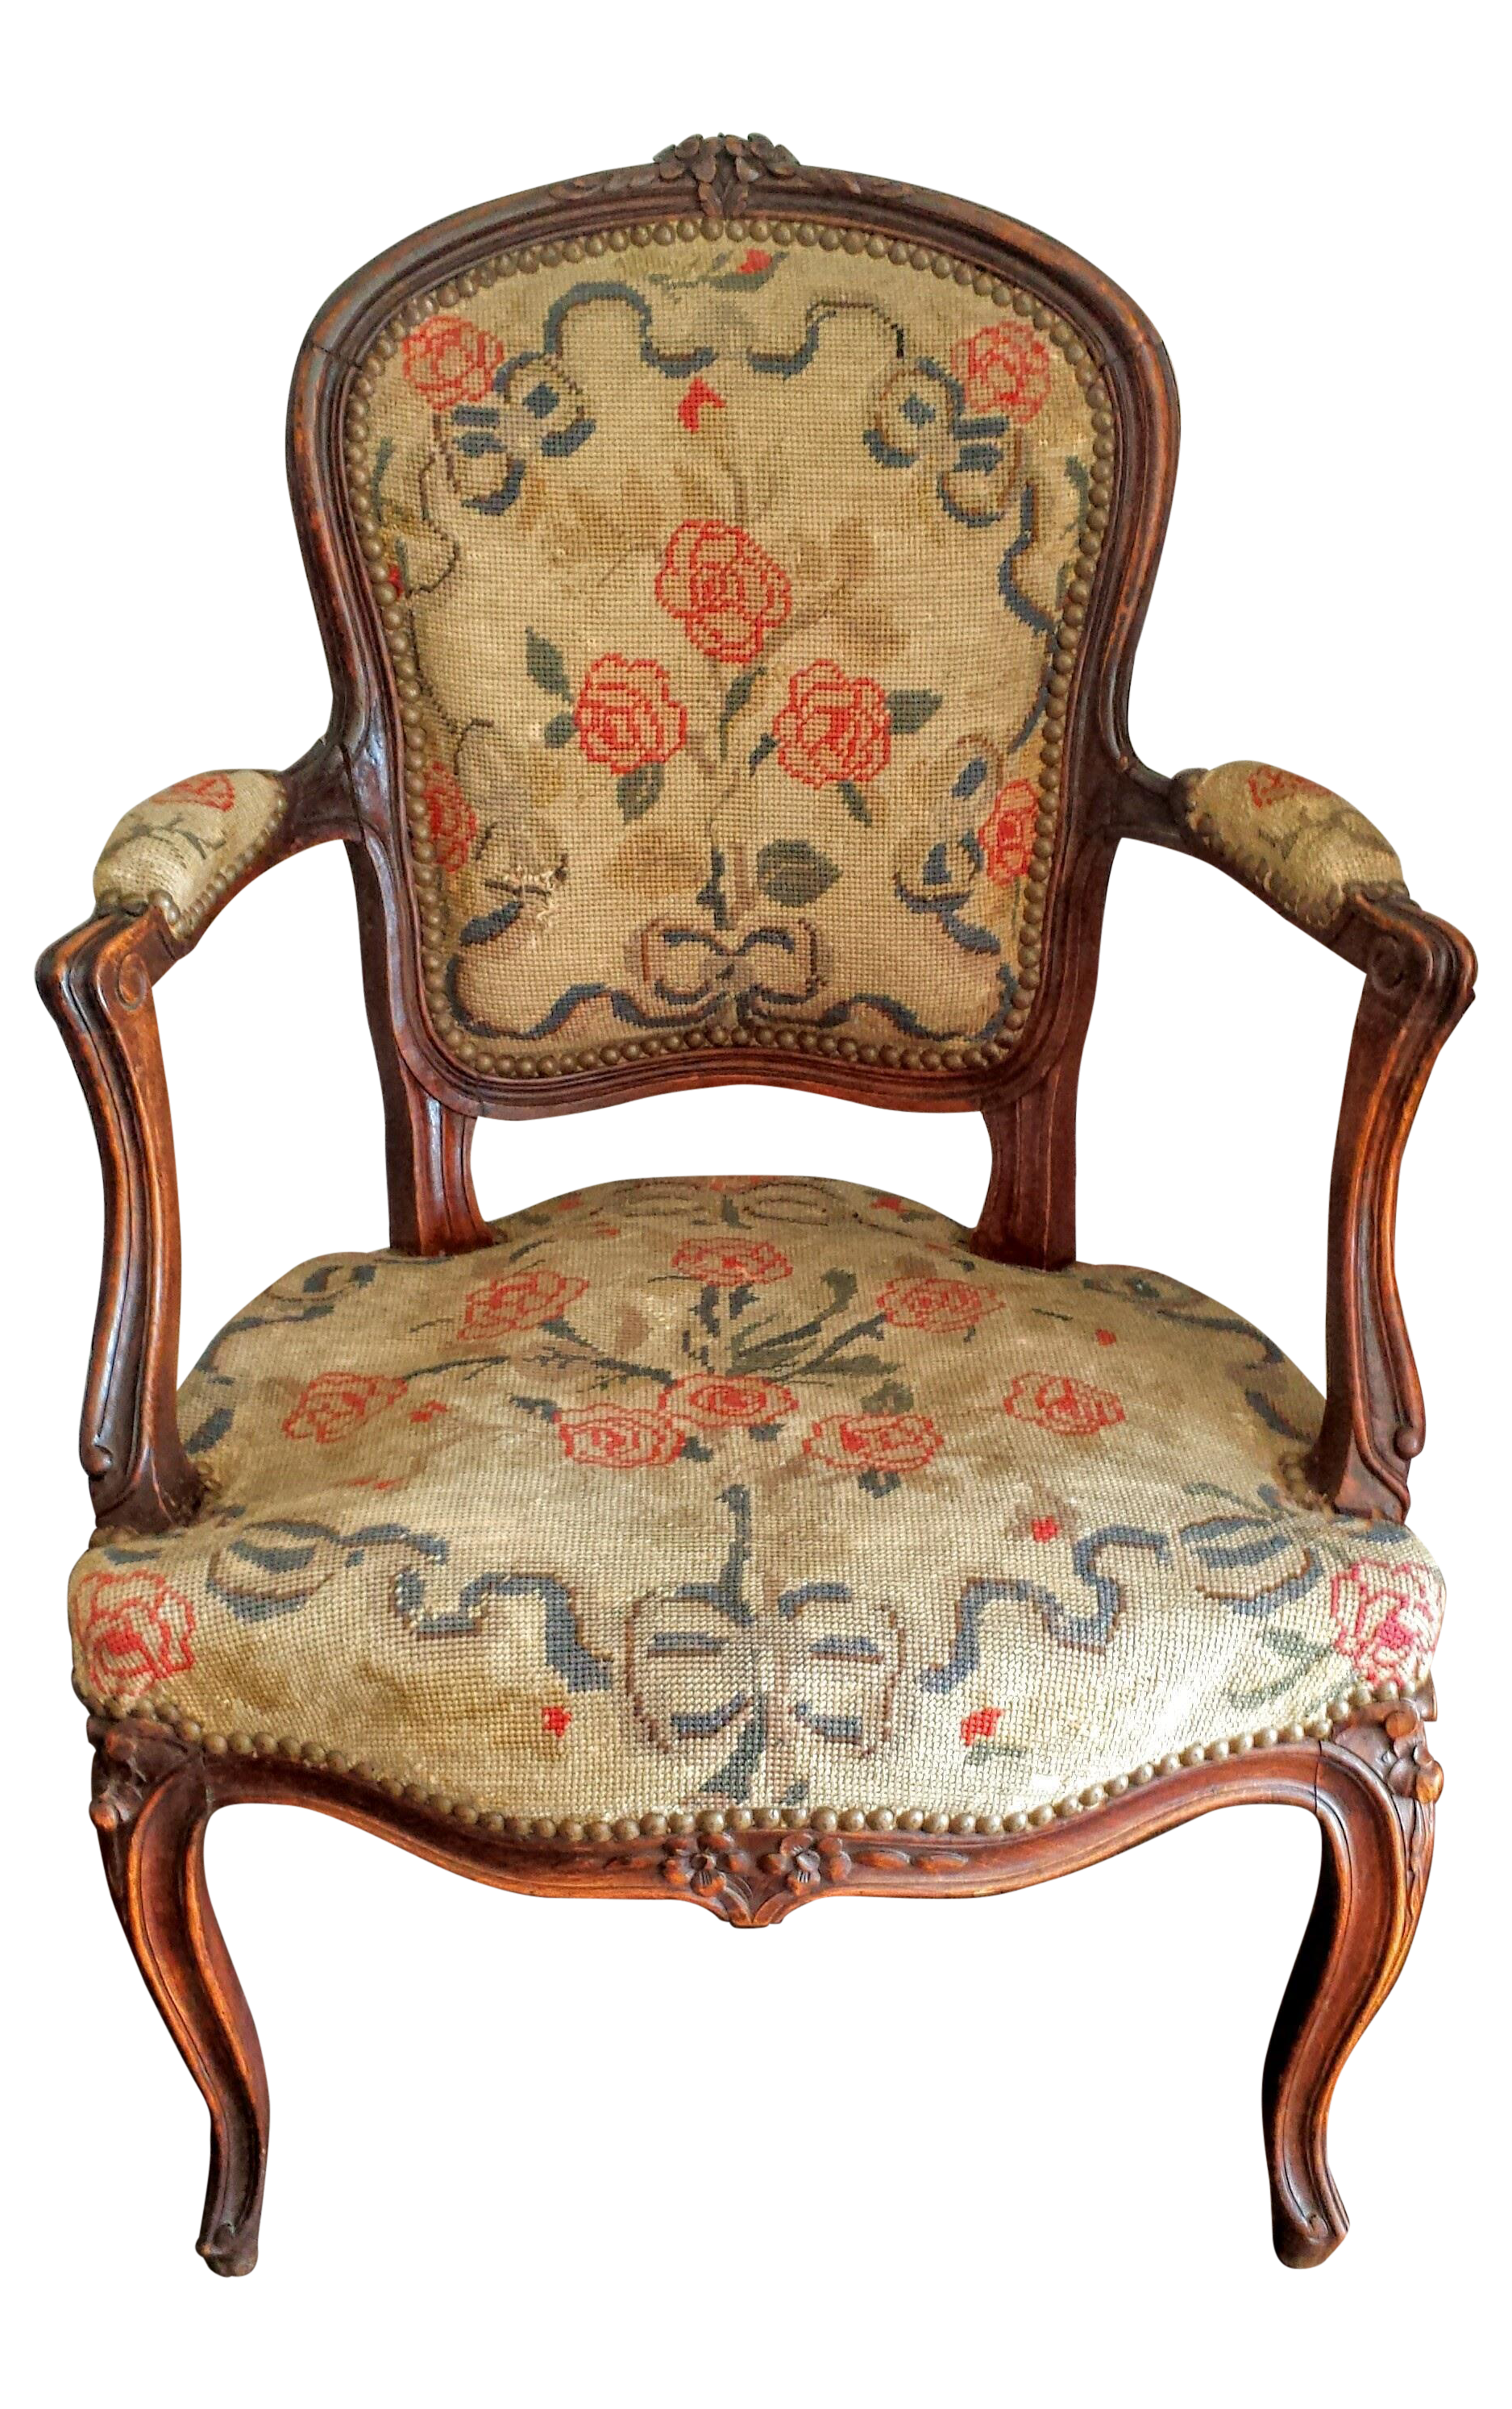 Antique French Louis Xv Style Needlepoint Chair Chairish